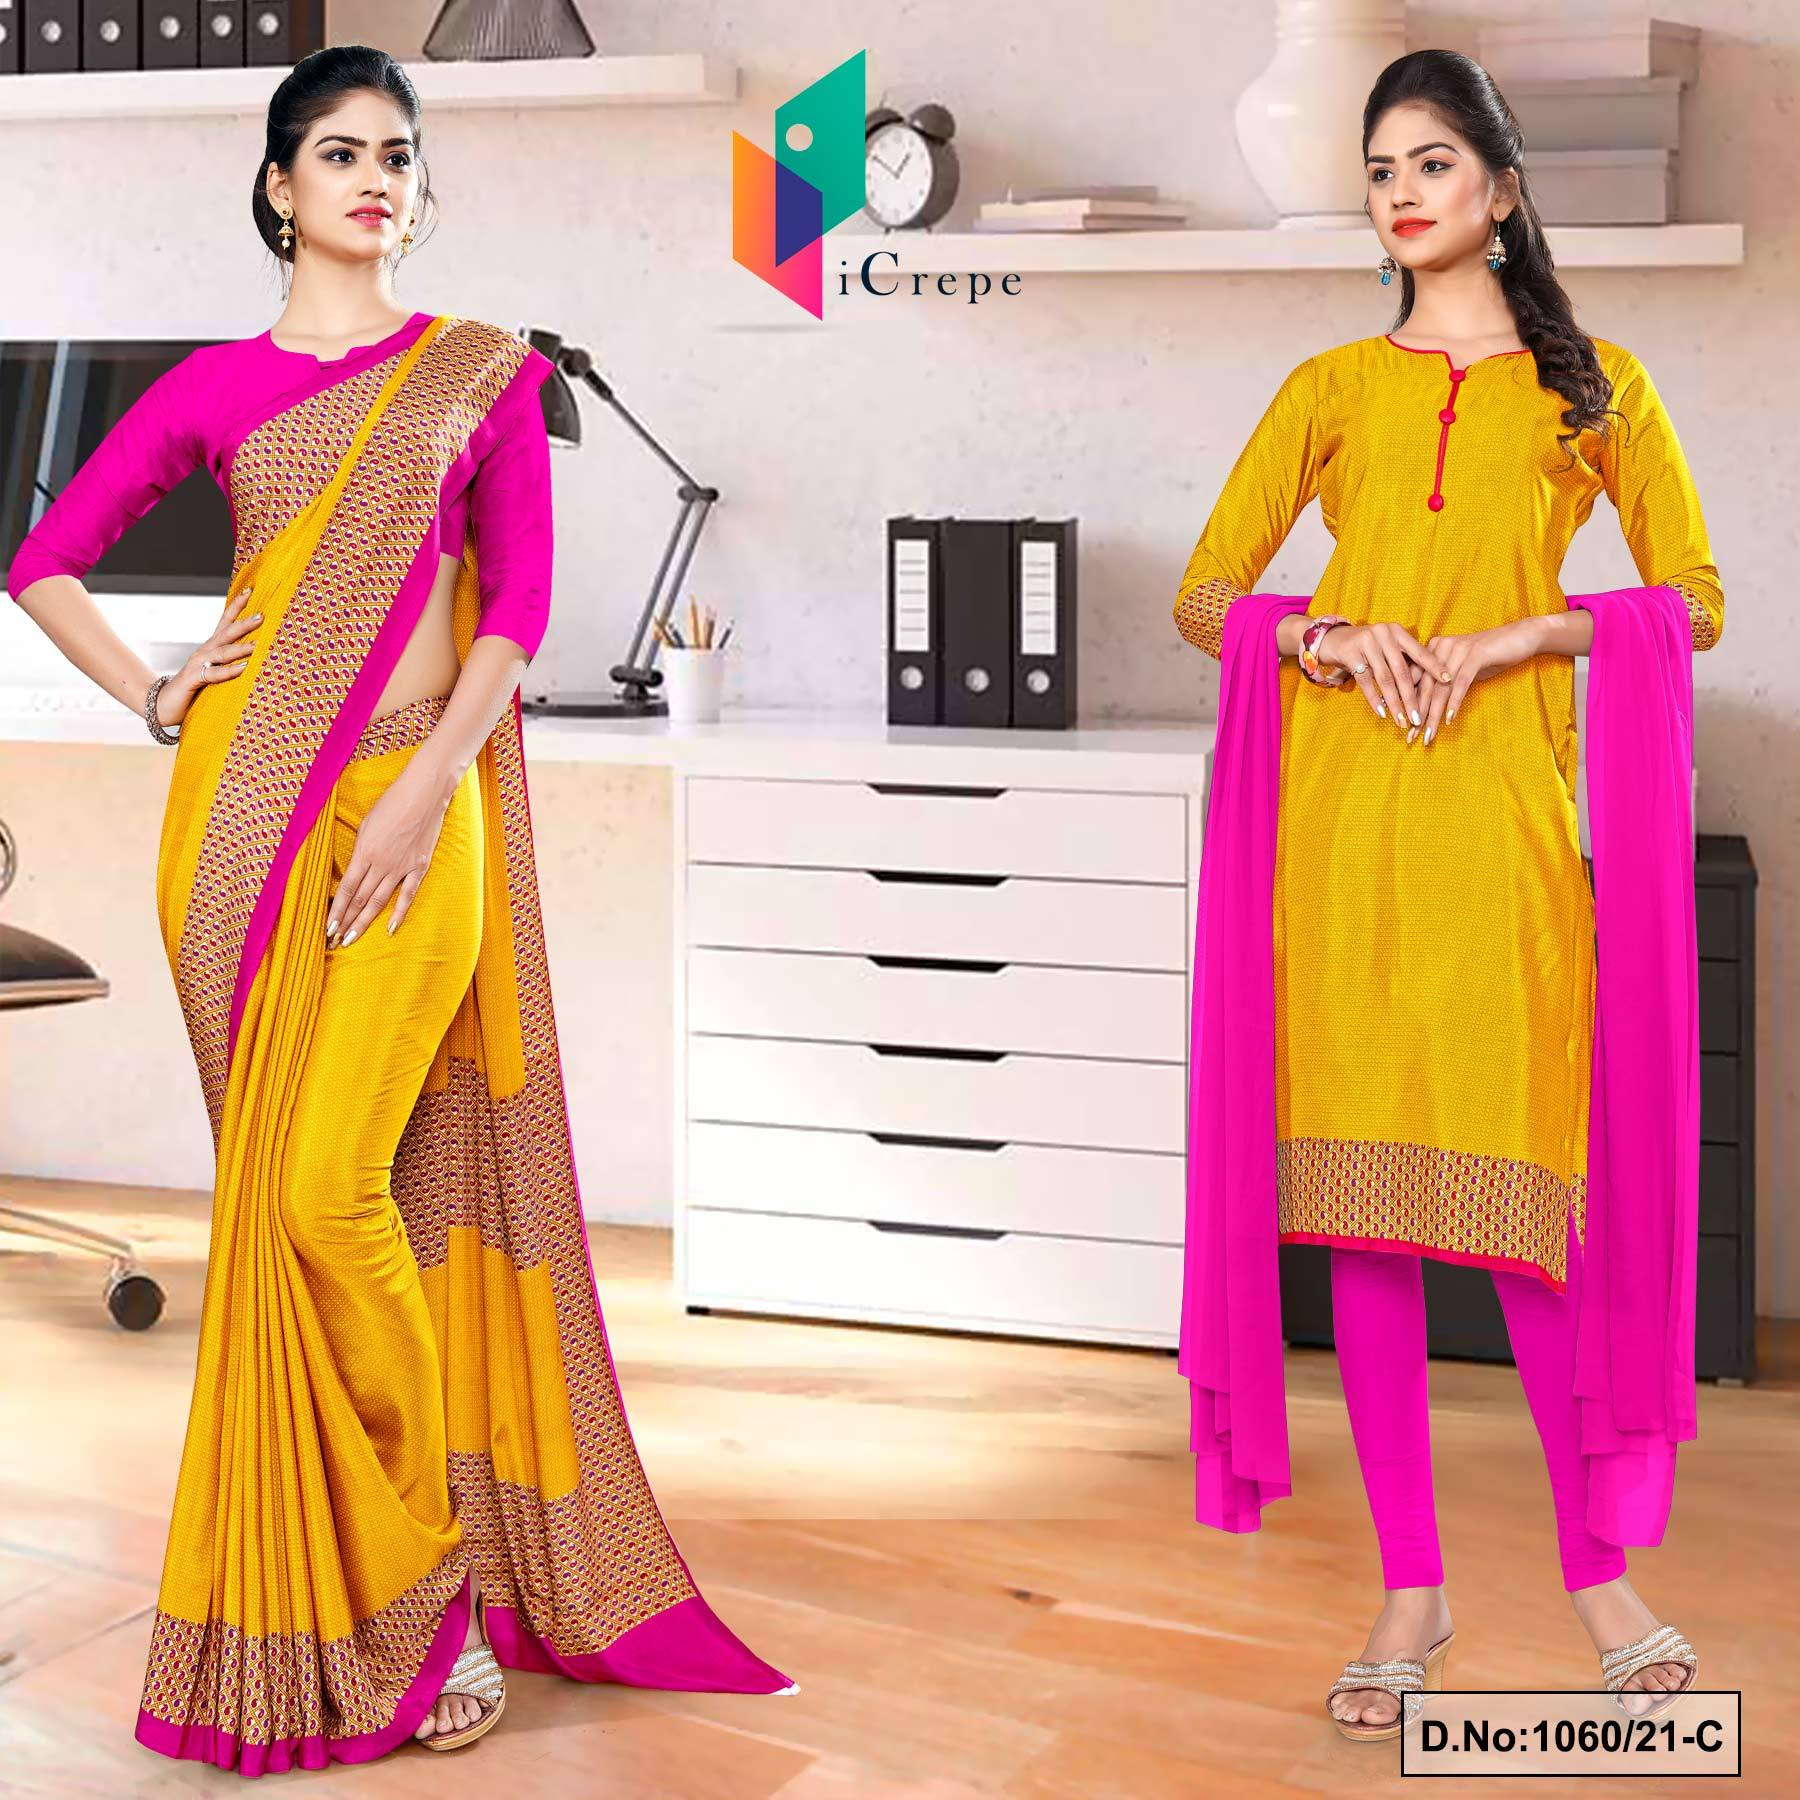 Yellow Rani Premium Italian Silk Crepe Uniform Saree Salwar Kameez Combo for Annual Function